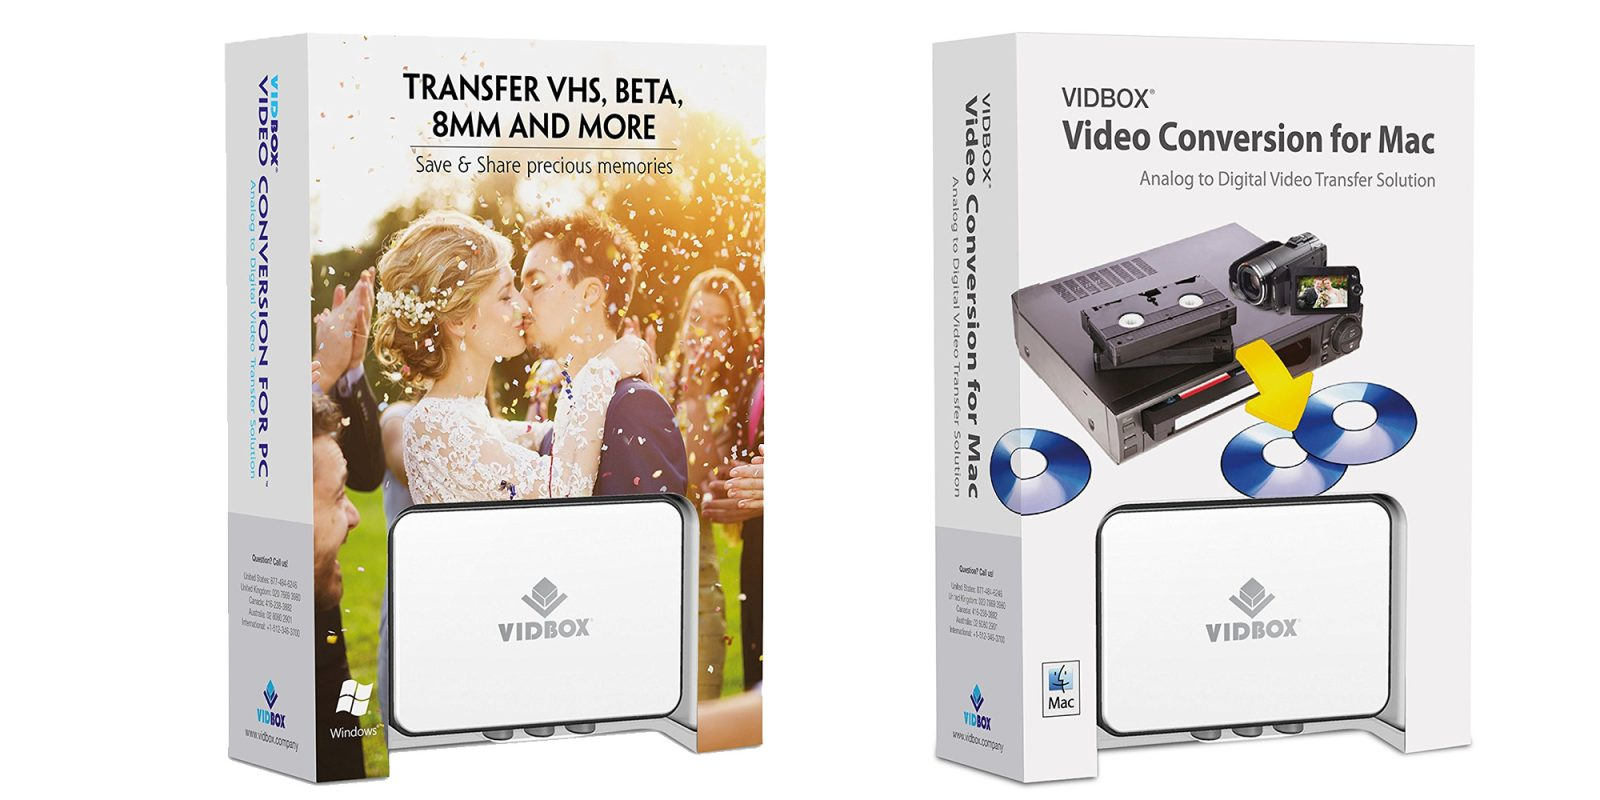 Digitize your old VHS & more on your Mac with VIDBOX, now just $48